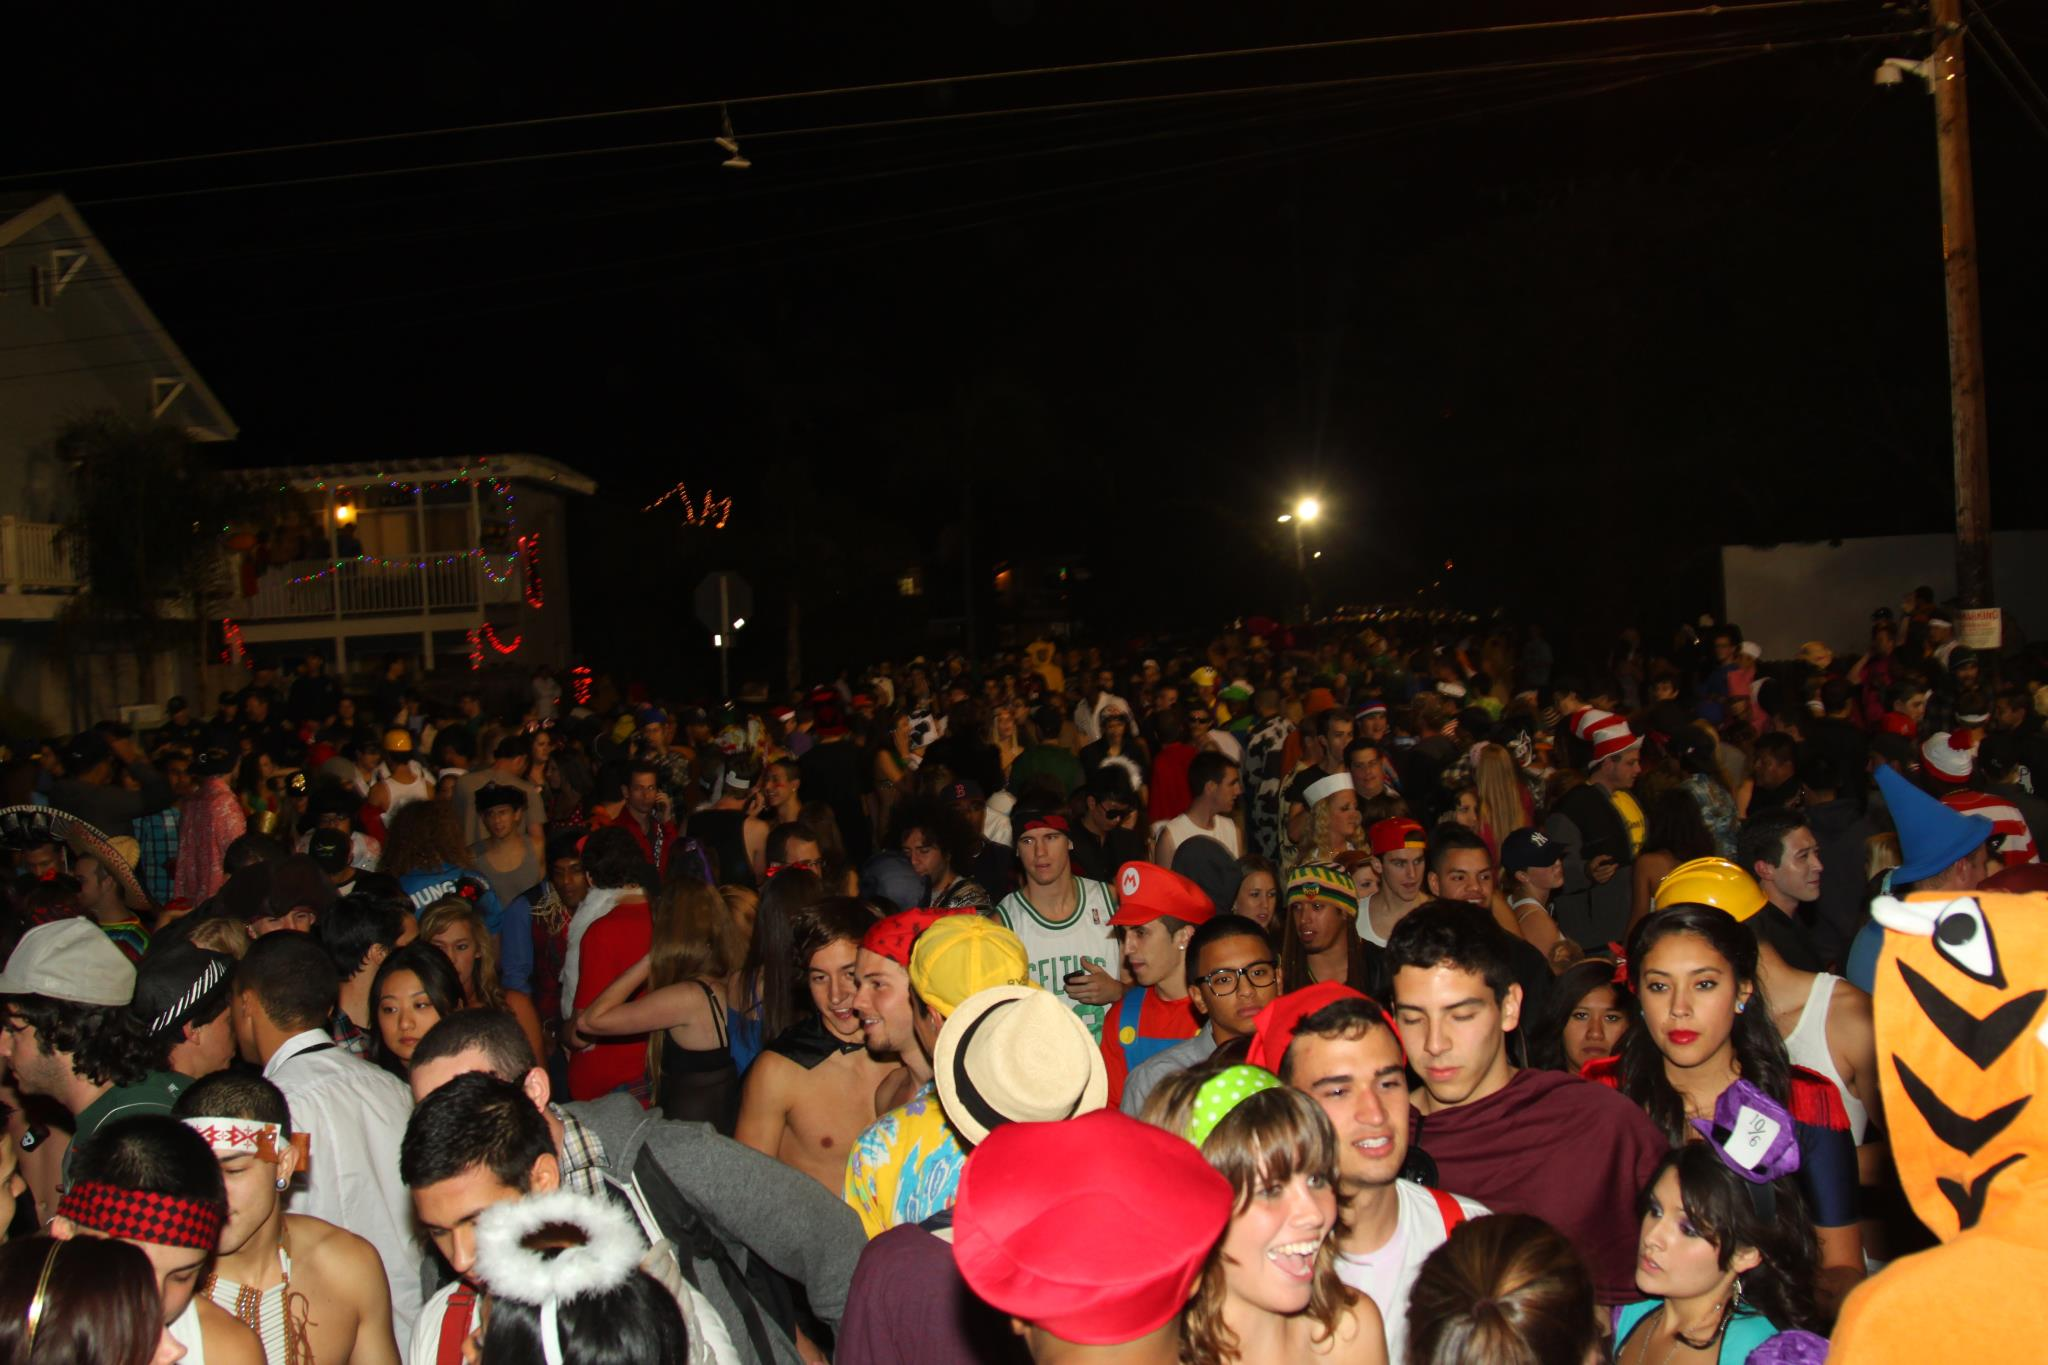 video: students celebrating halloween 2011 in the streets of isla